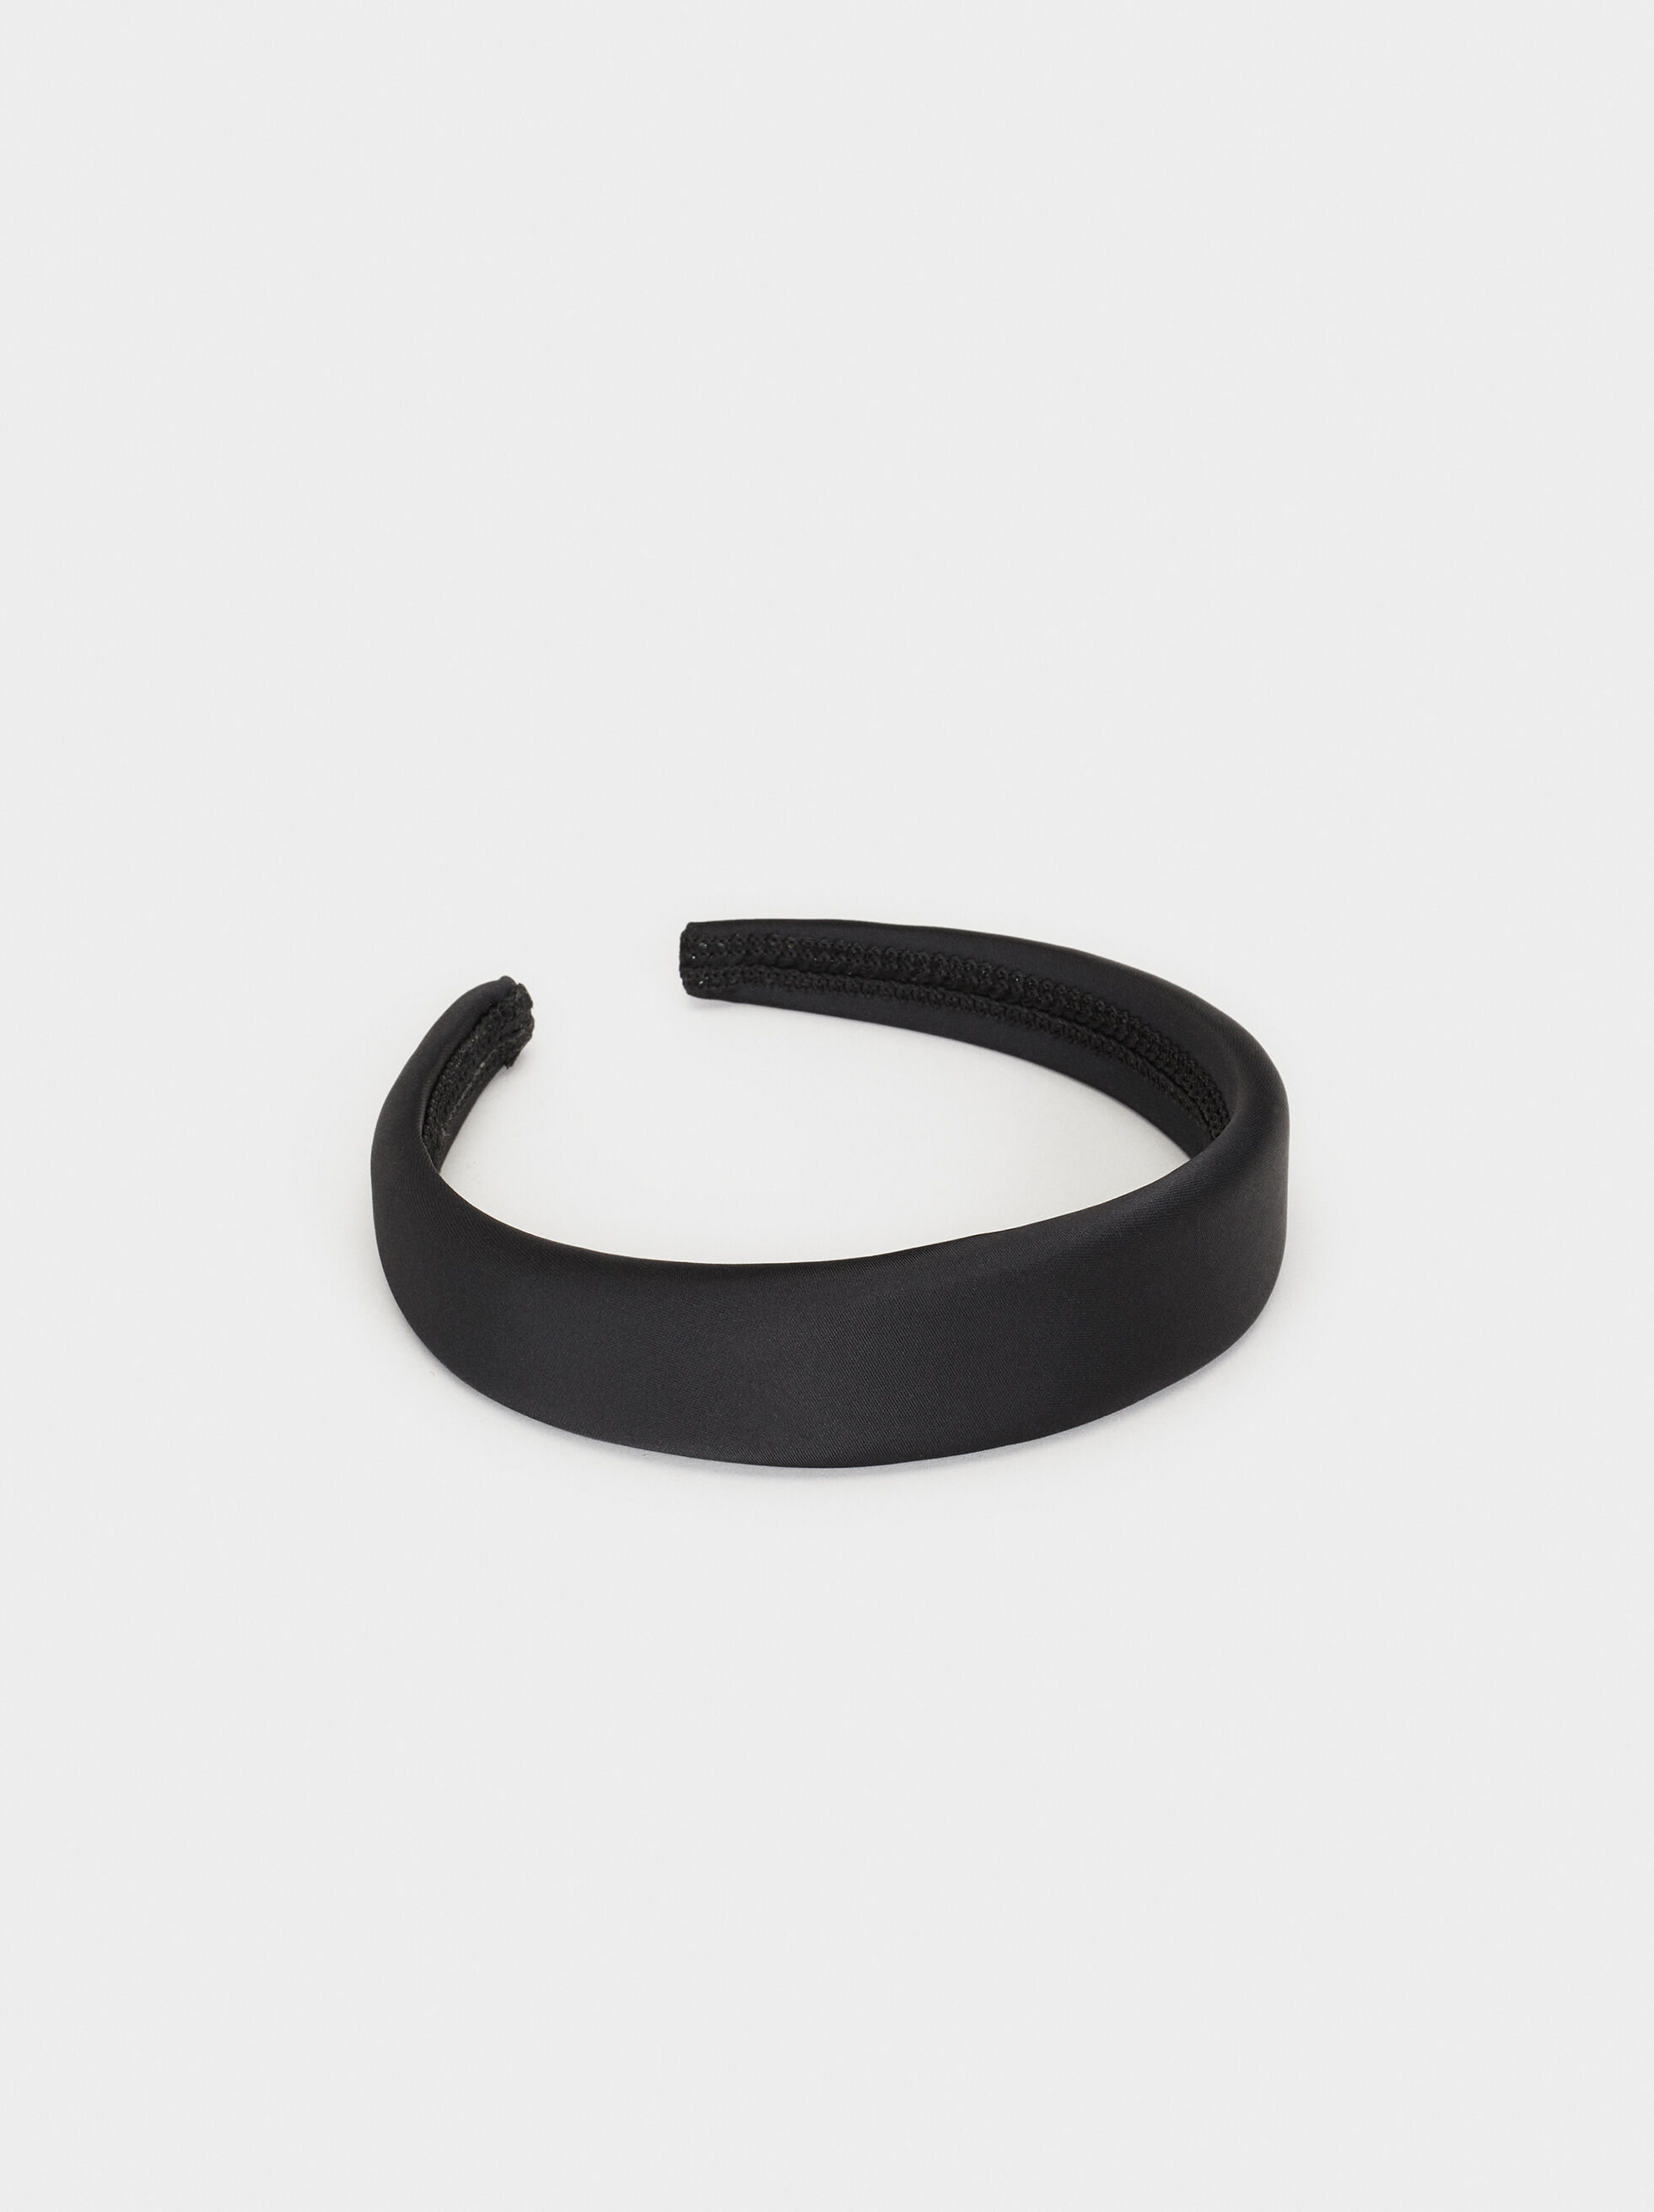 Long Headband, Black, hi-res